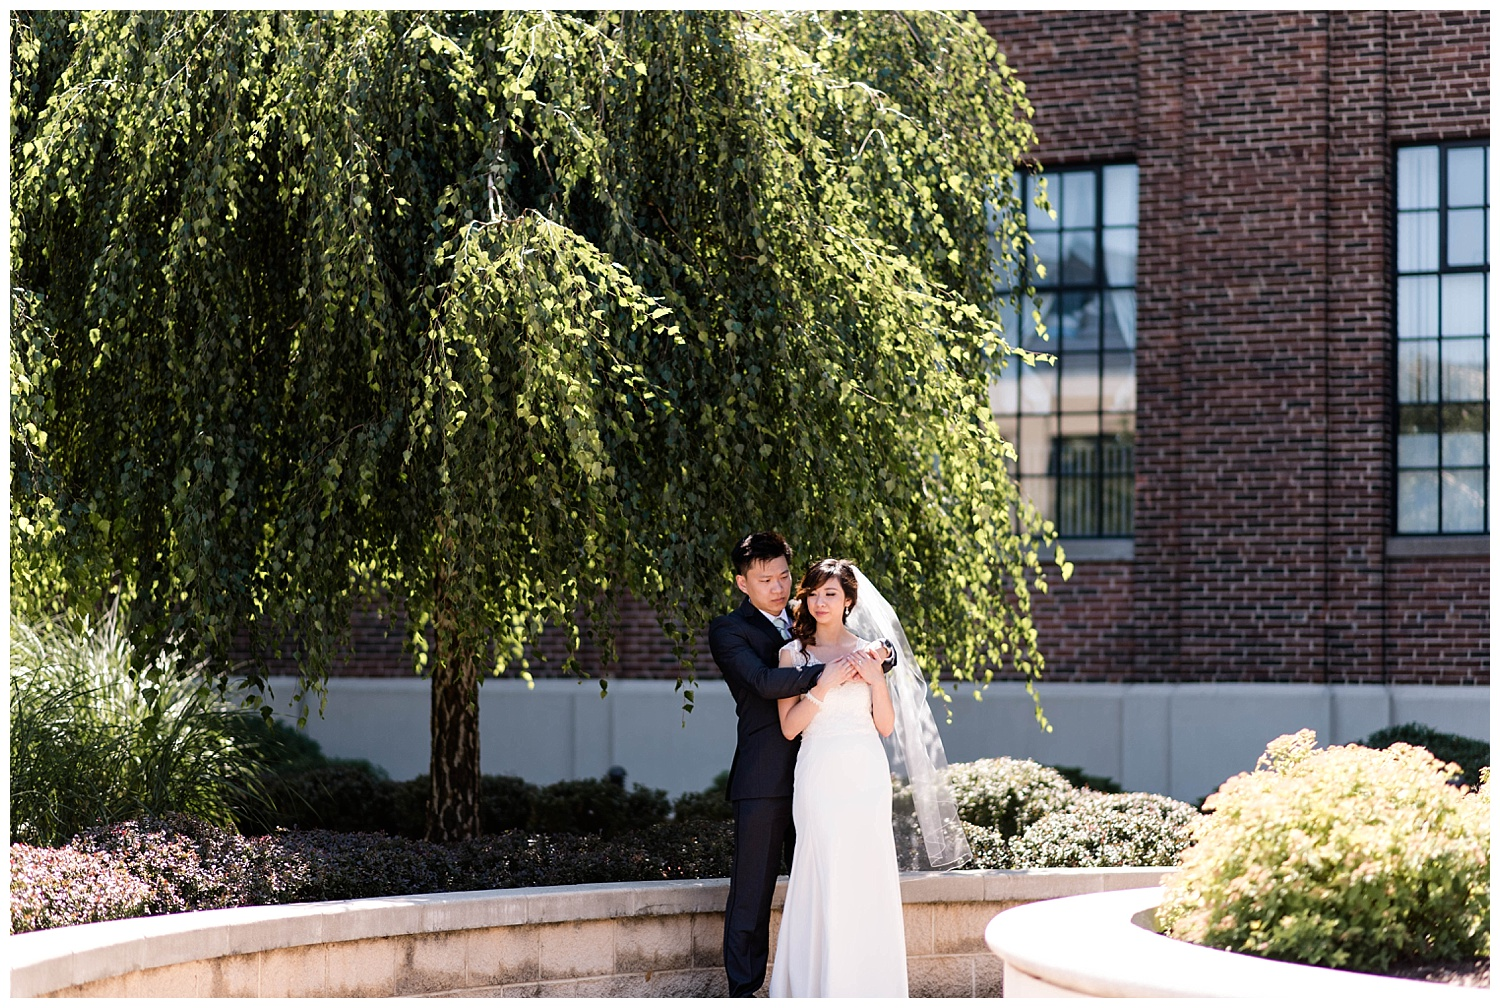 Weddings_by_Raisa_Photography_Saint_Mary_Magdalen_New_Vintage_Grand_Rapids_Michigan_Wedding_Photographer_0092.jpg